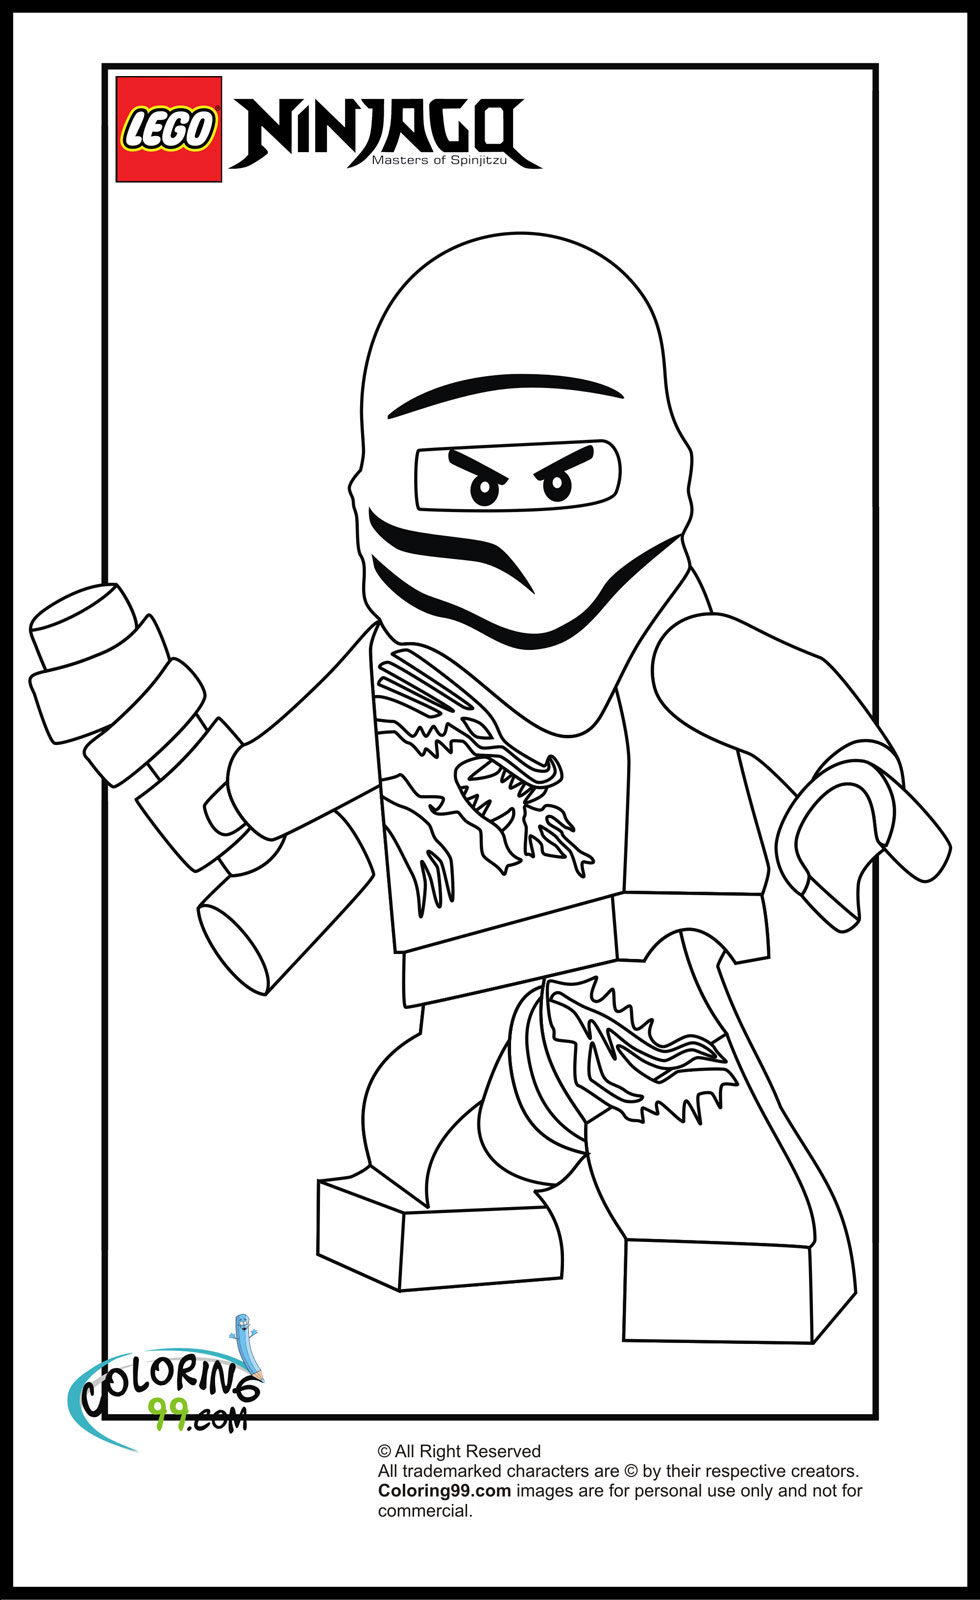 zane ninjago coloring pages - photo#8